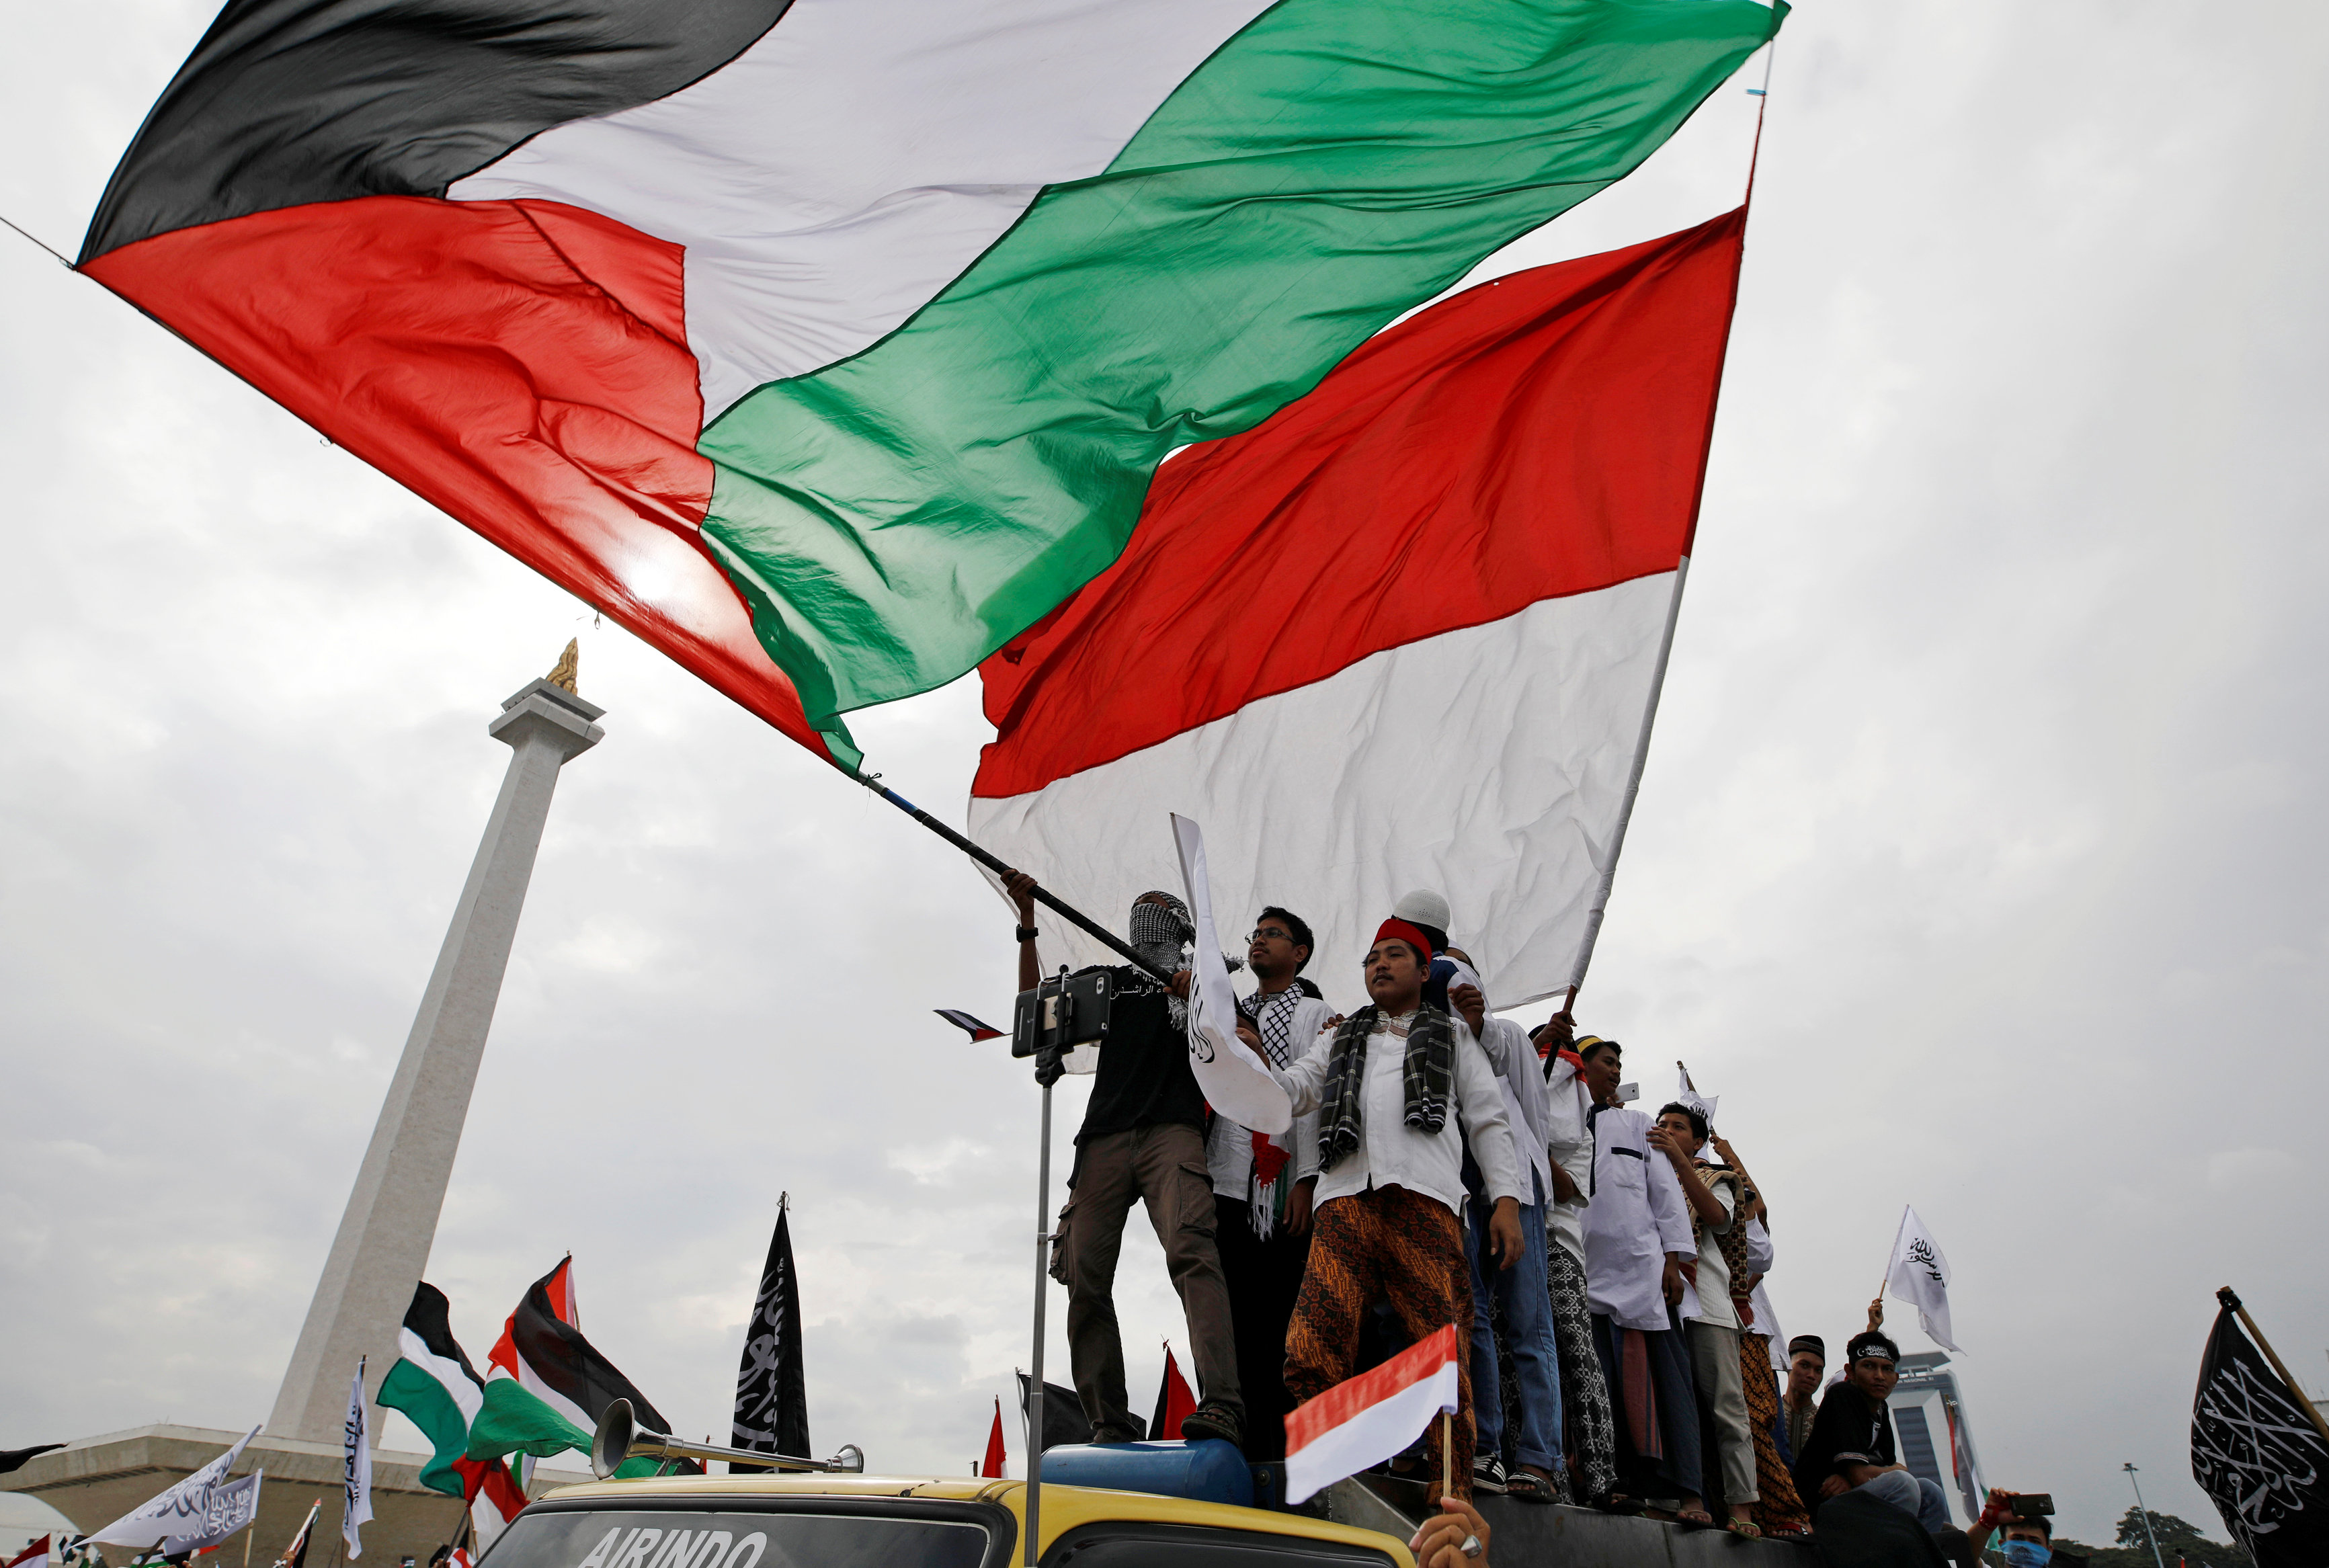 Indonesia labels calls for U.S. boycott over Jerusalem move 'misguided'